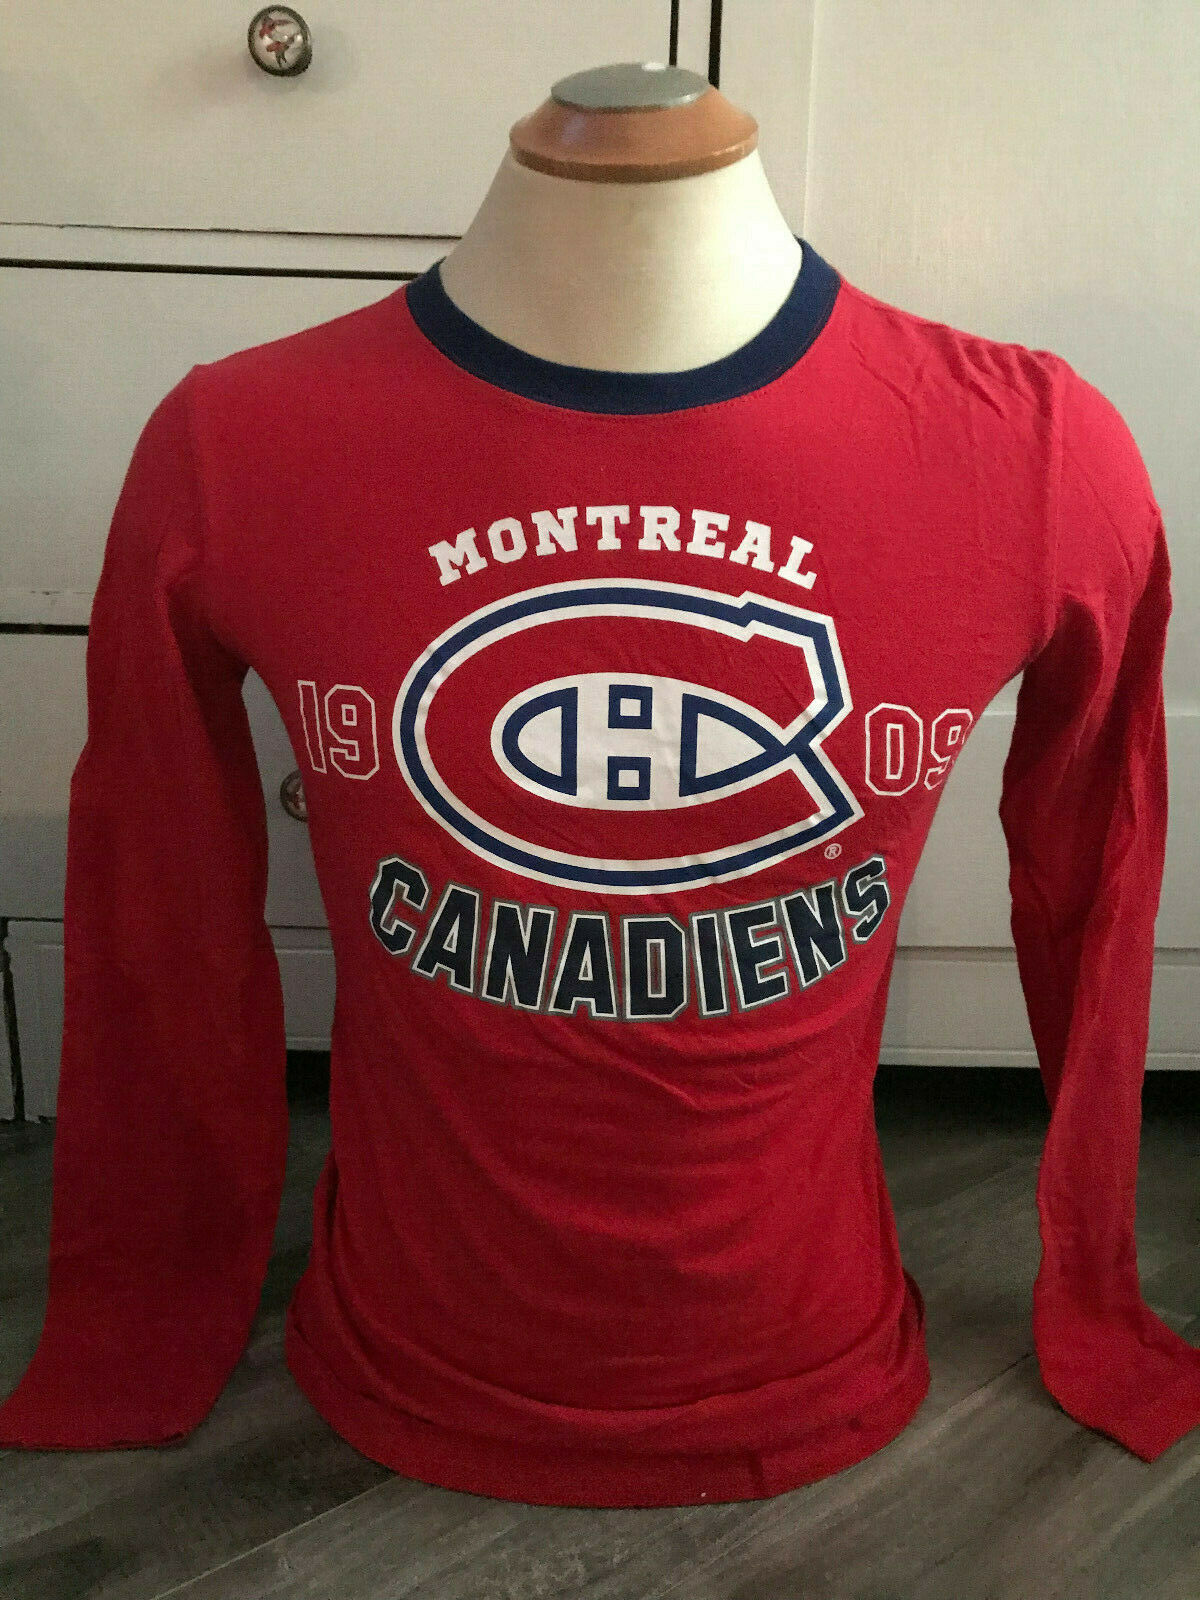 Montreal Canadiens 1909 Women's Size Small Long Sleeve Shirt - $15.15